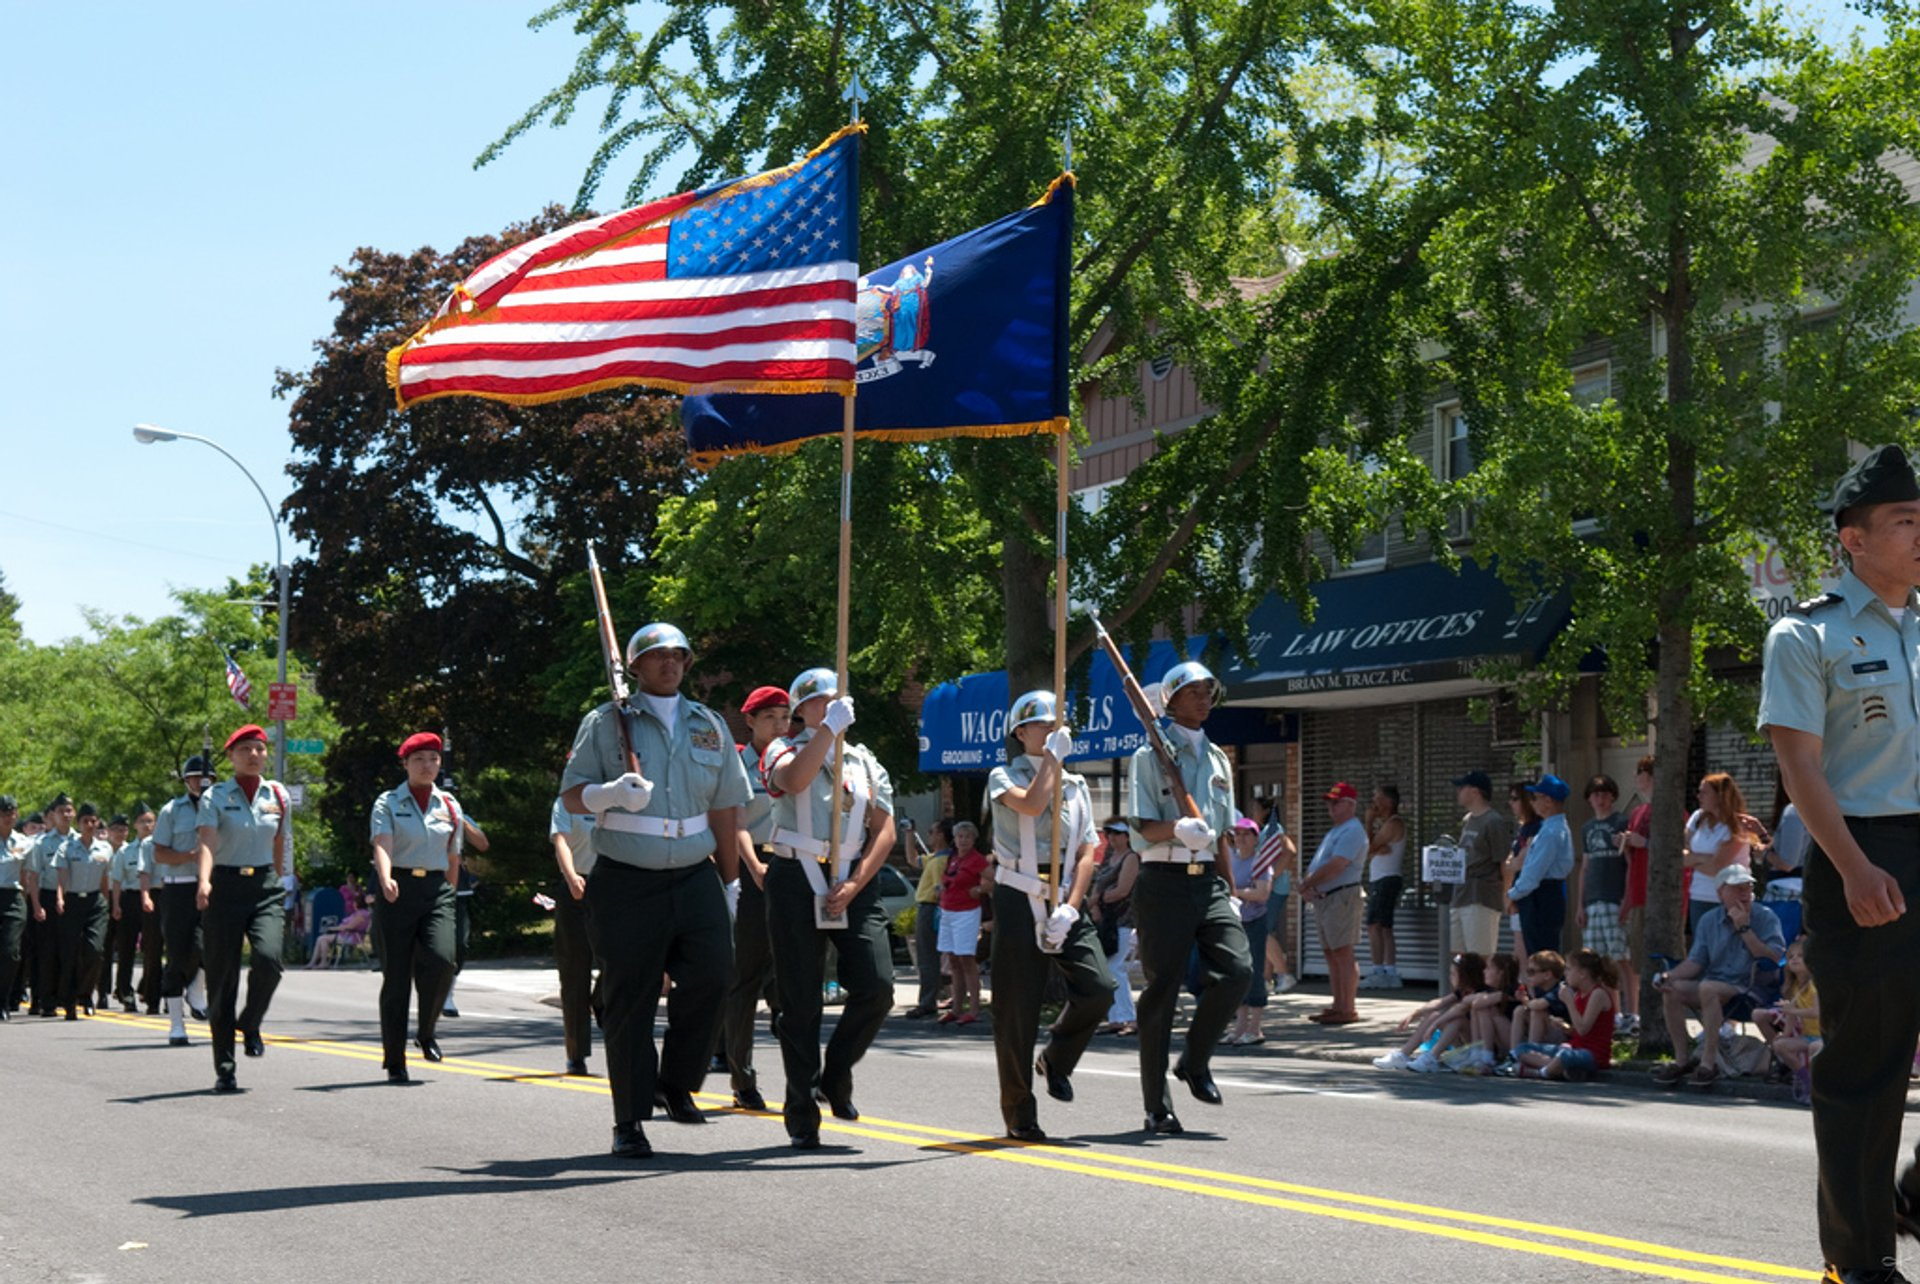 Forest Hills Memorial Day Parade, Queens NY 2020